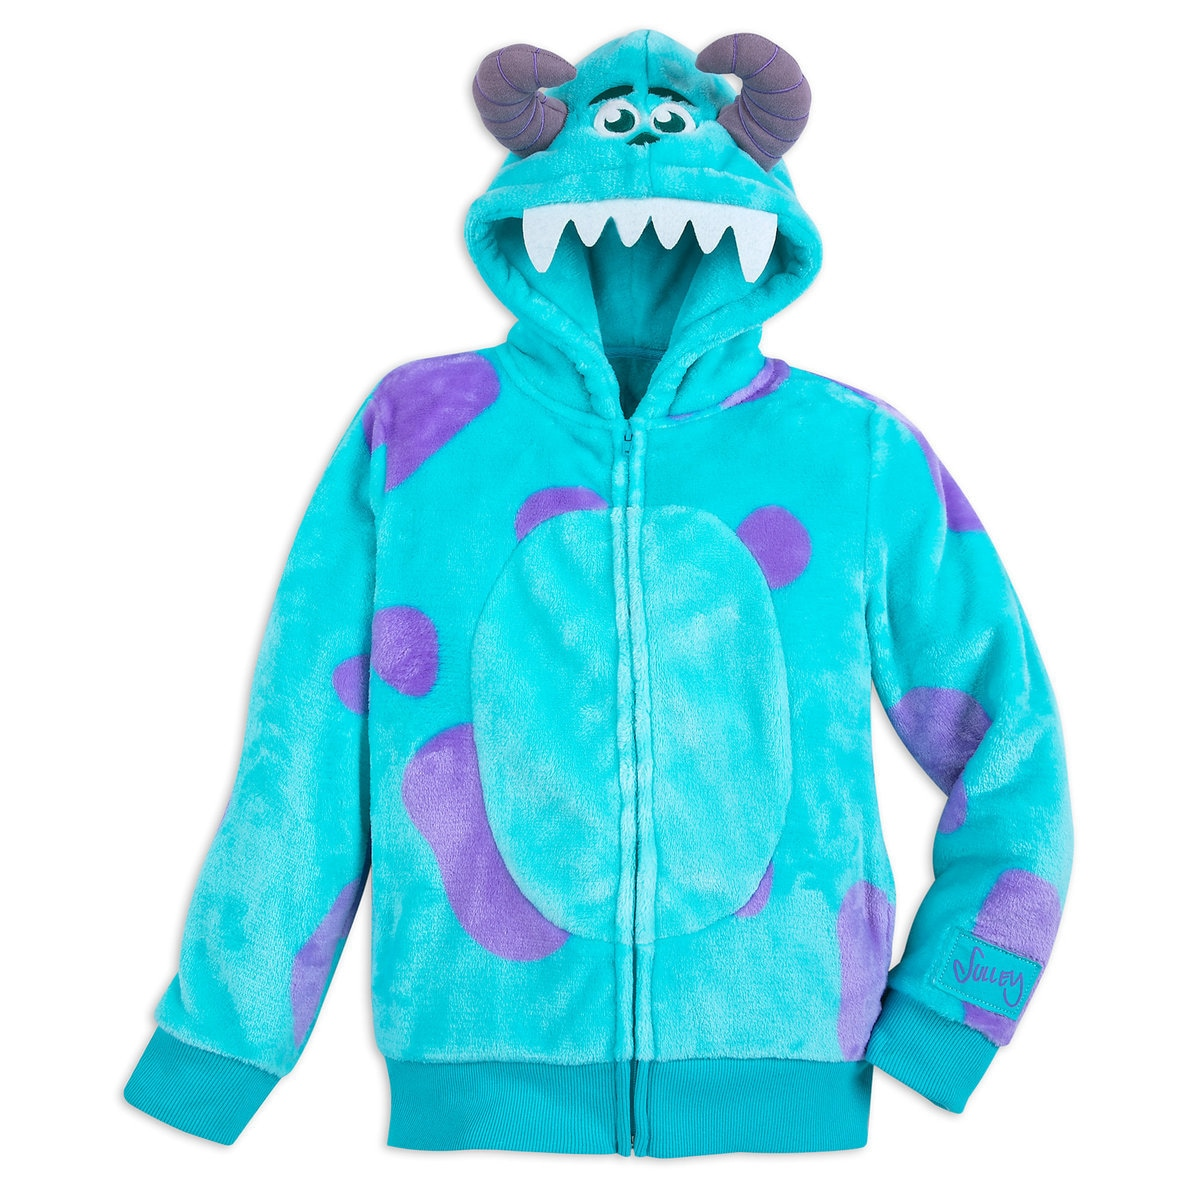 71a90353389a Product Image of Sulley Costume Zip Hoodie for Kids   1